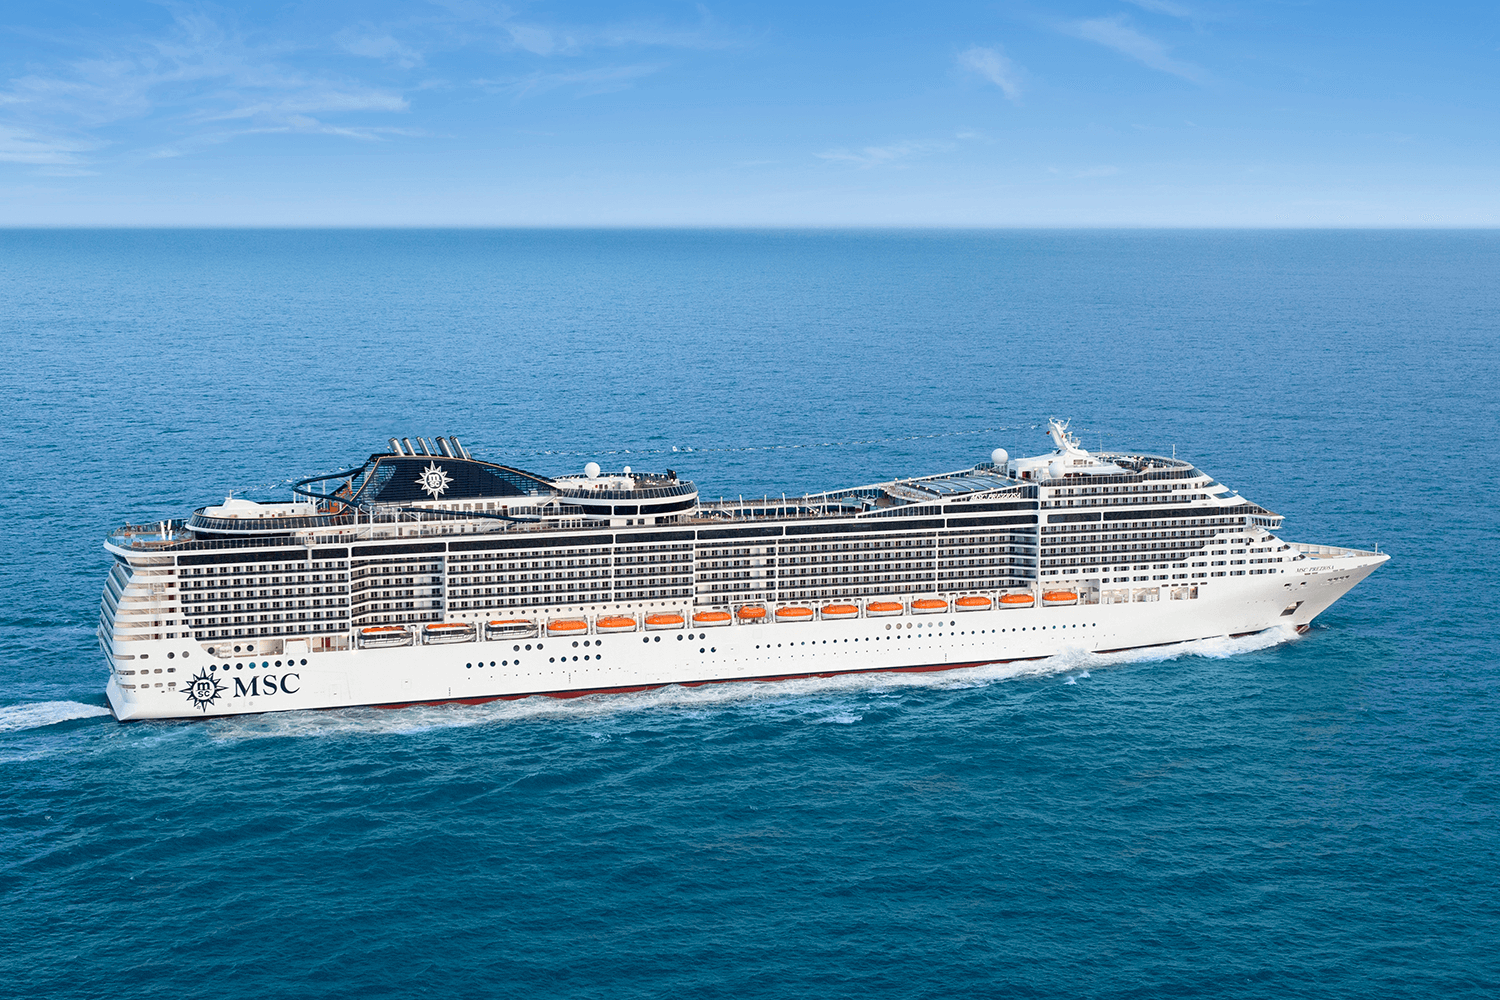 The MSC Preziosa at sea